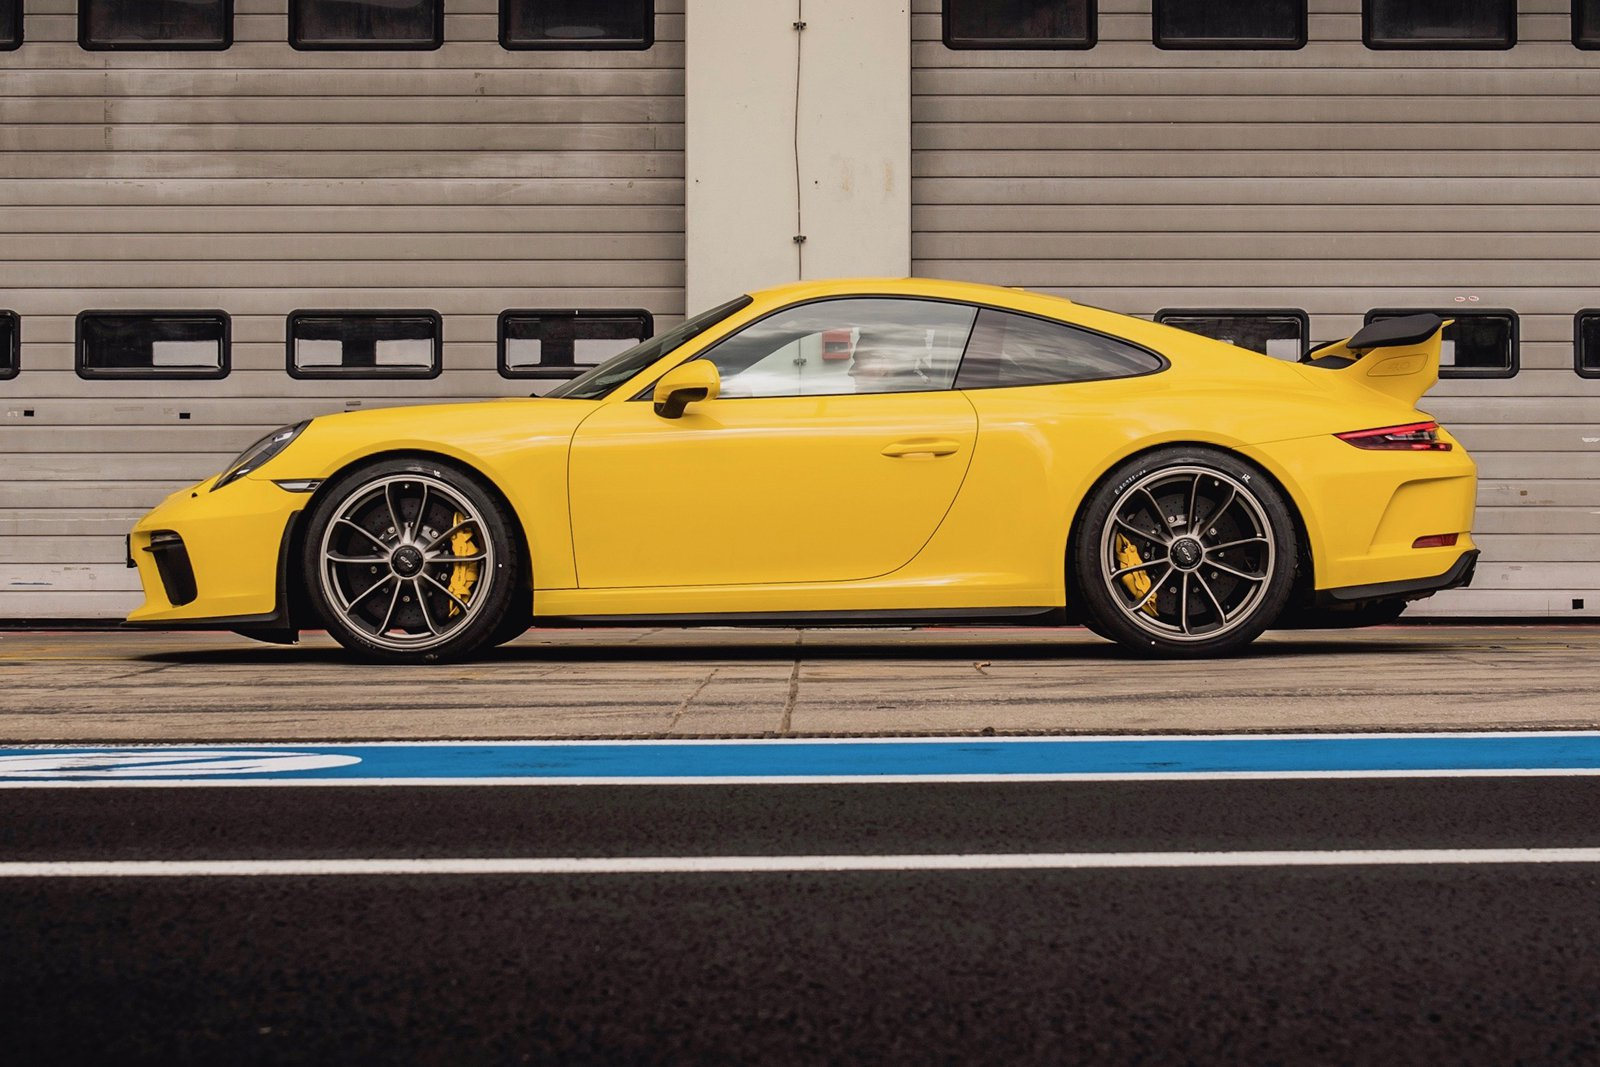 The 2018 Porsche 911 GT3 is Faster and Slower Than These 5 at the Nurburgring